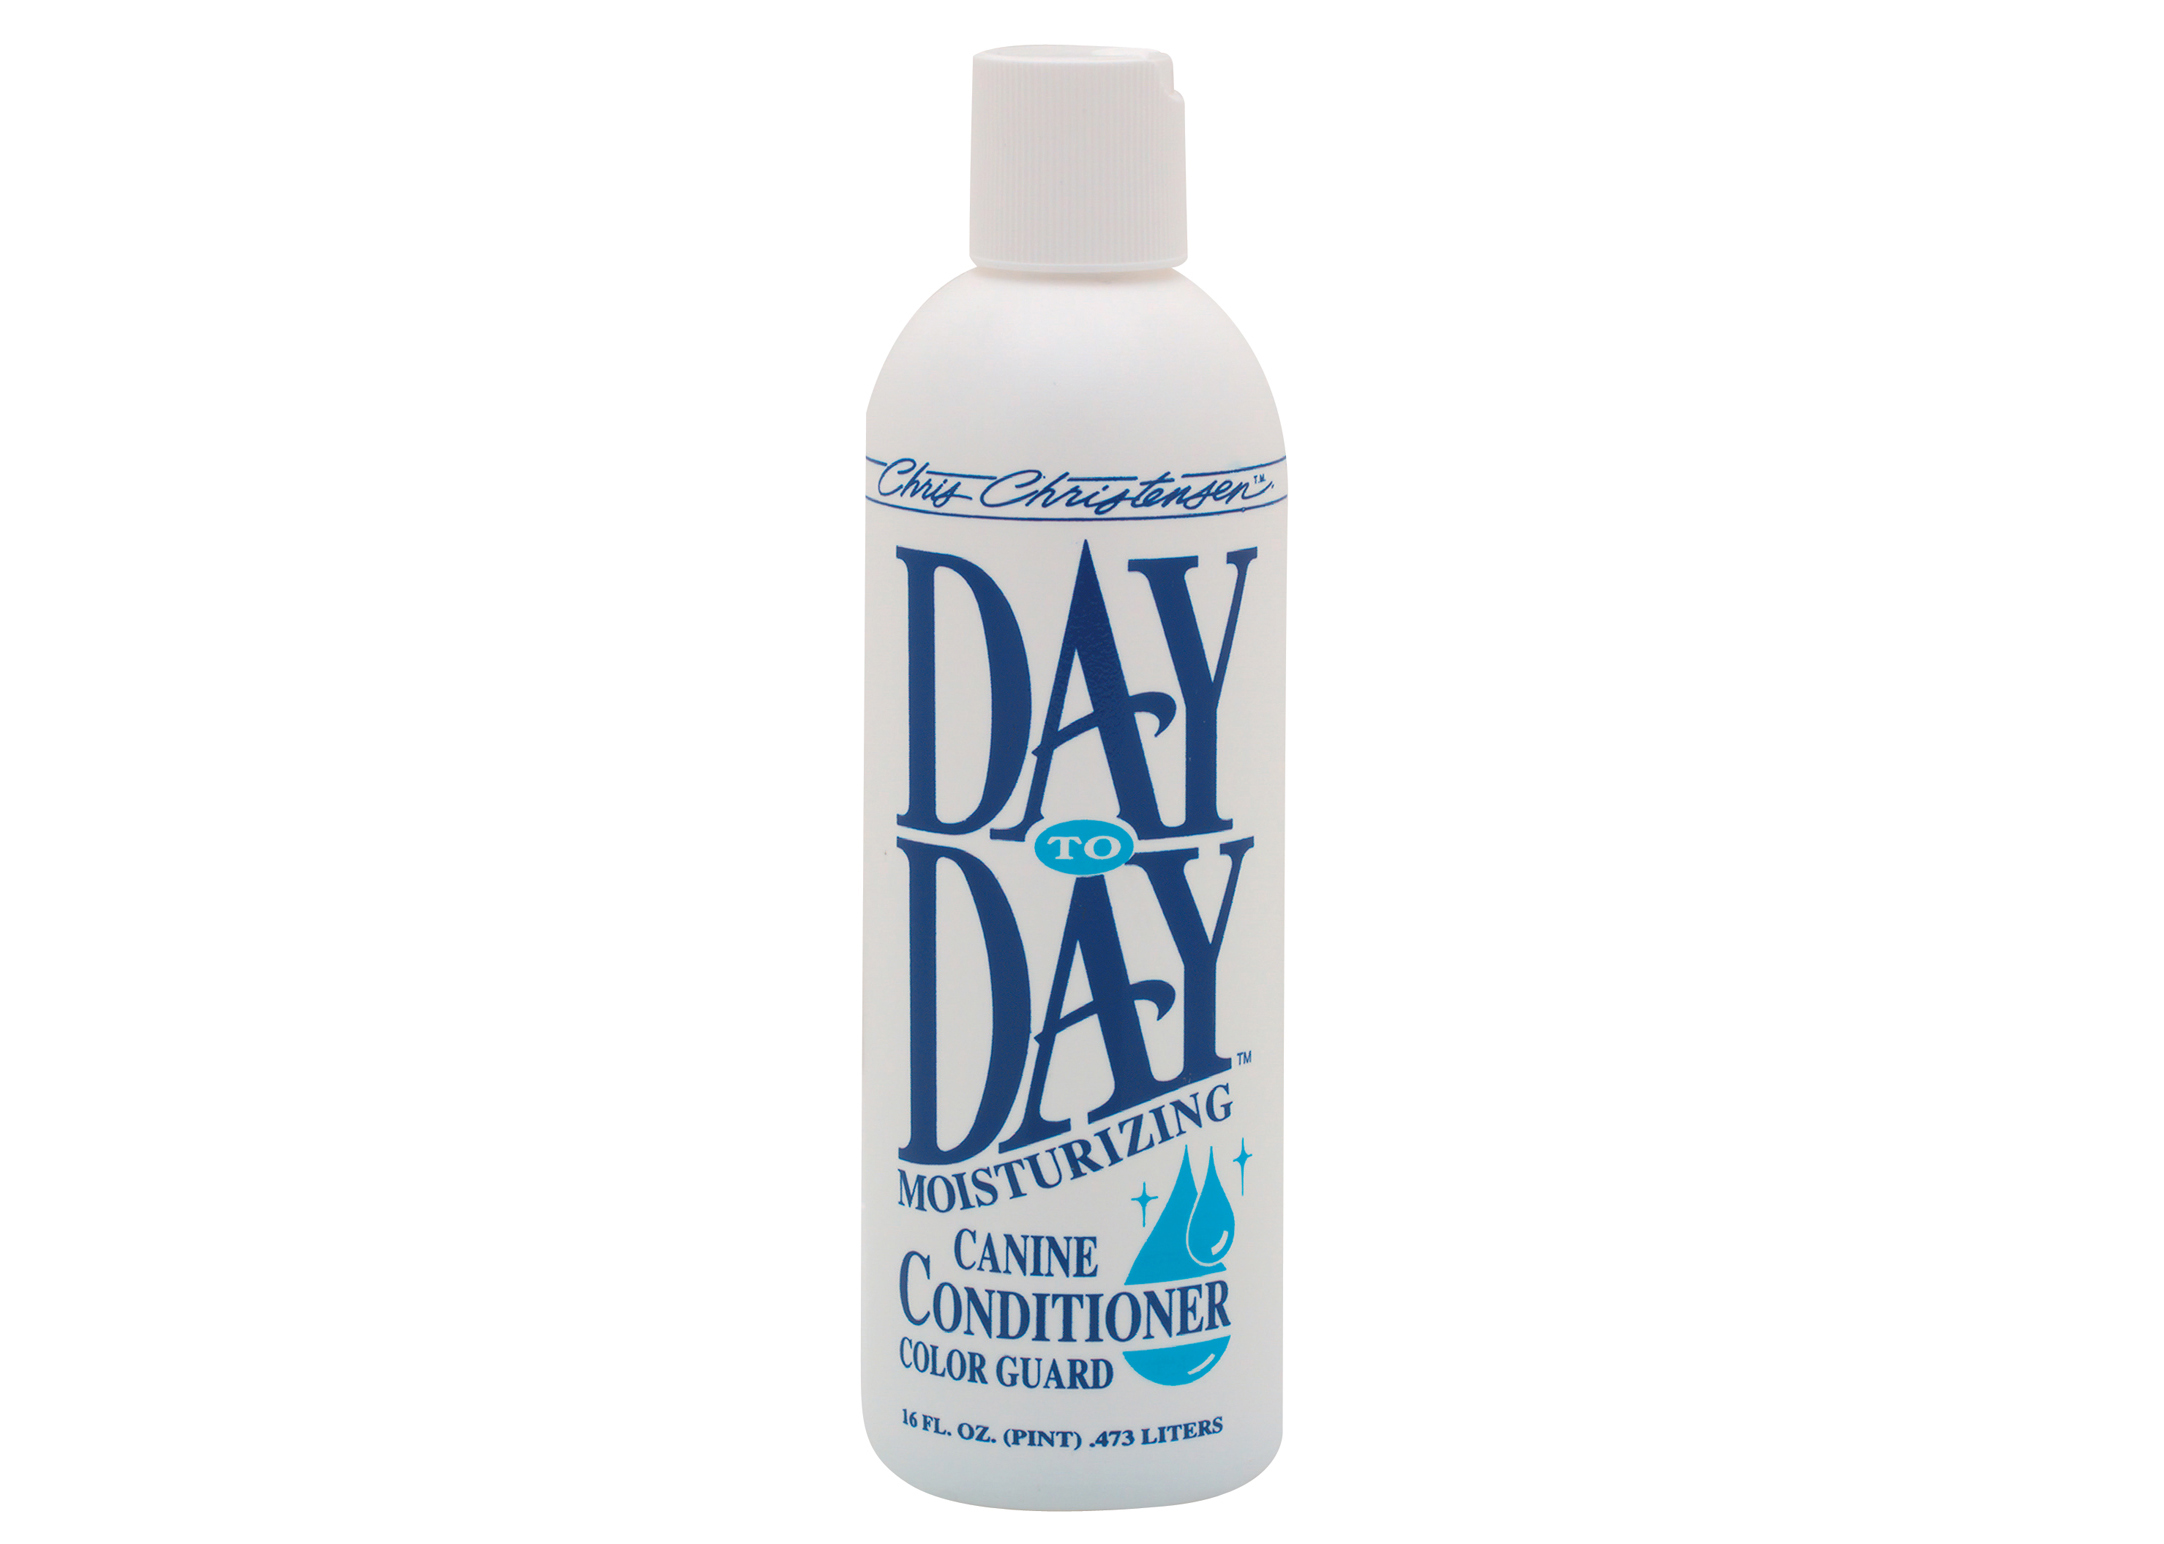 Chris Christensen Systems Day to Day Moisturizing Conditioner Voor Honden, Katten En Paarden